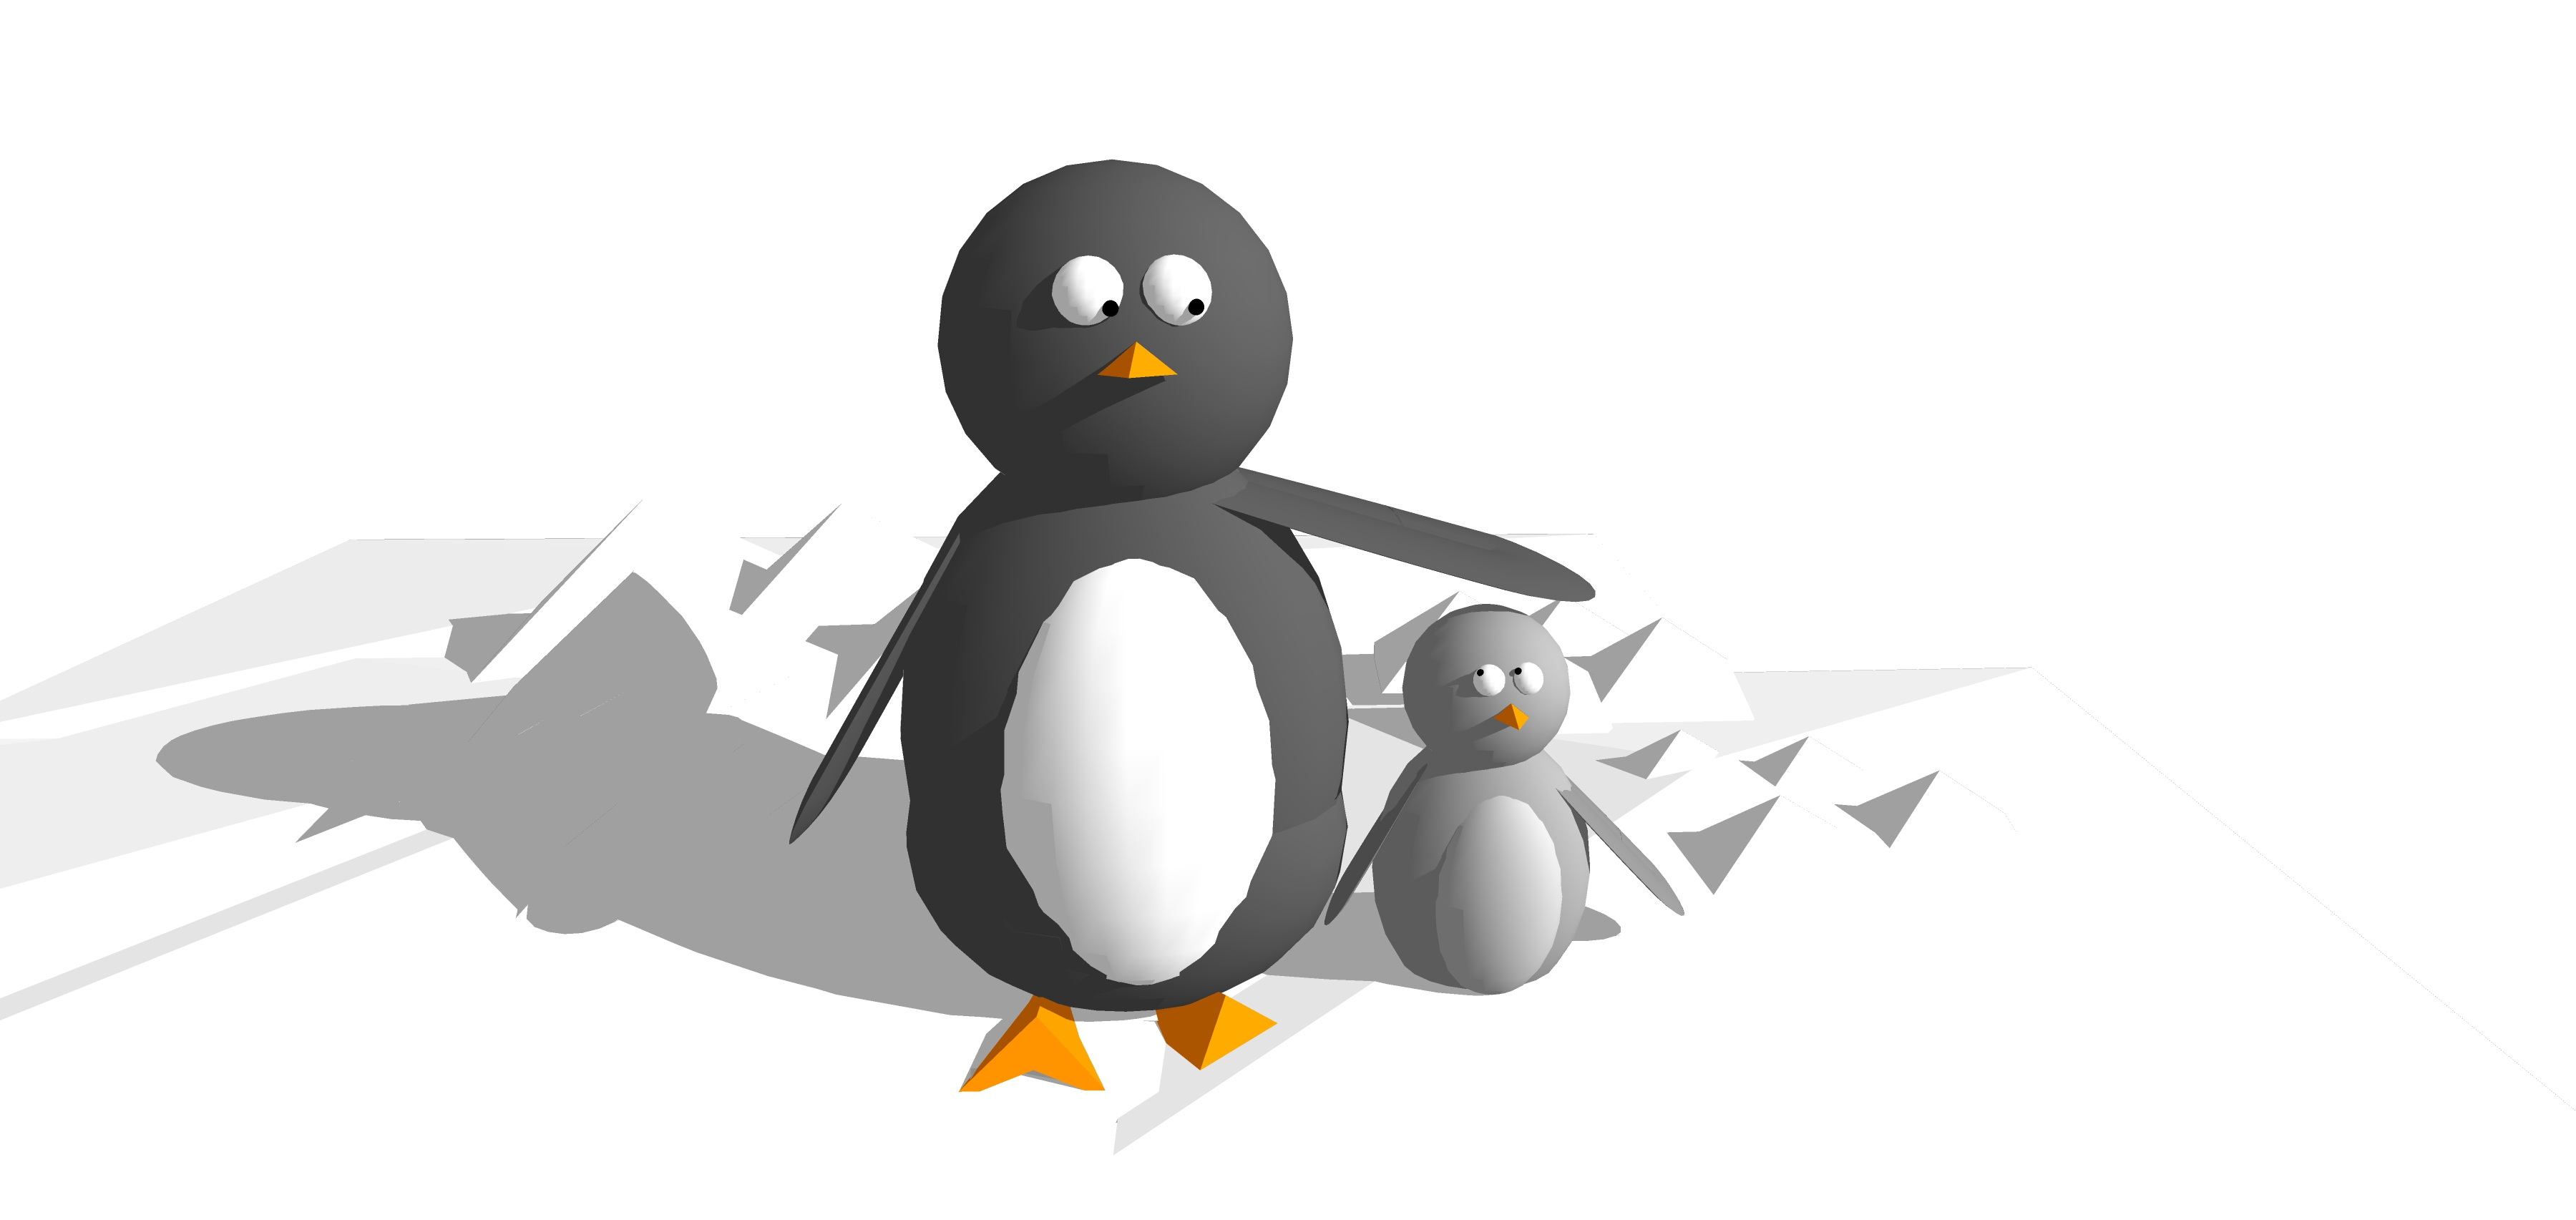 GORDONS PENGUINS 3